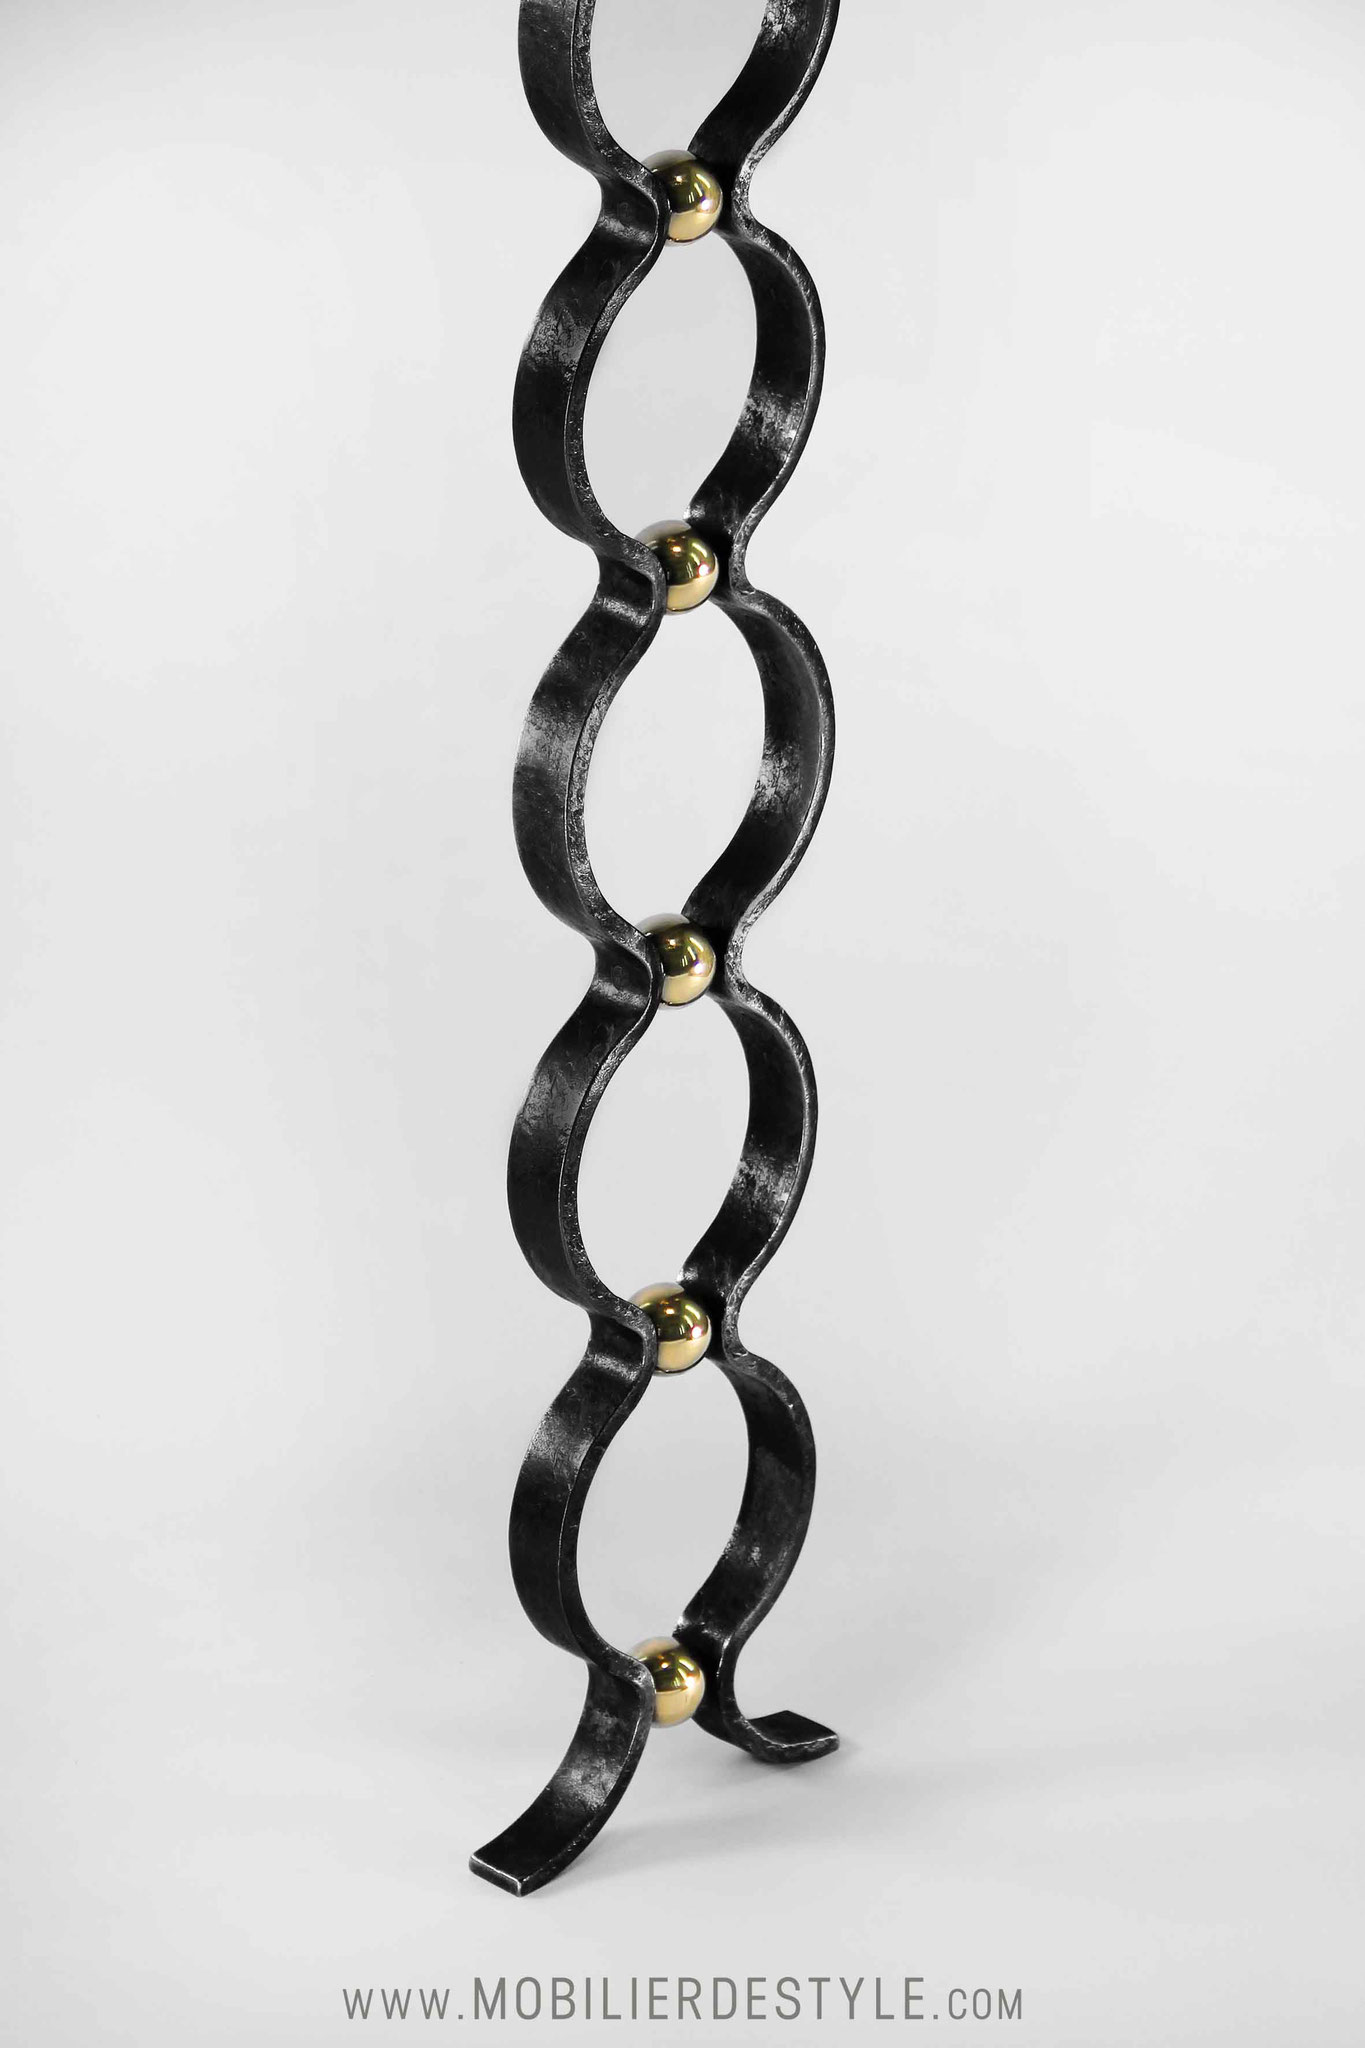 Finition 4 : Black painted wrought iron